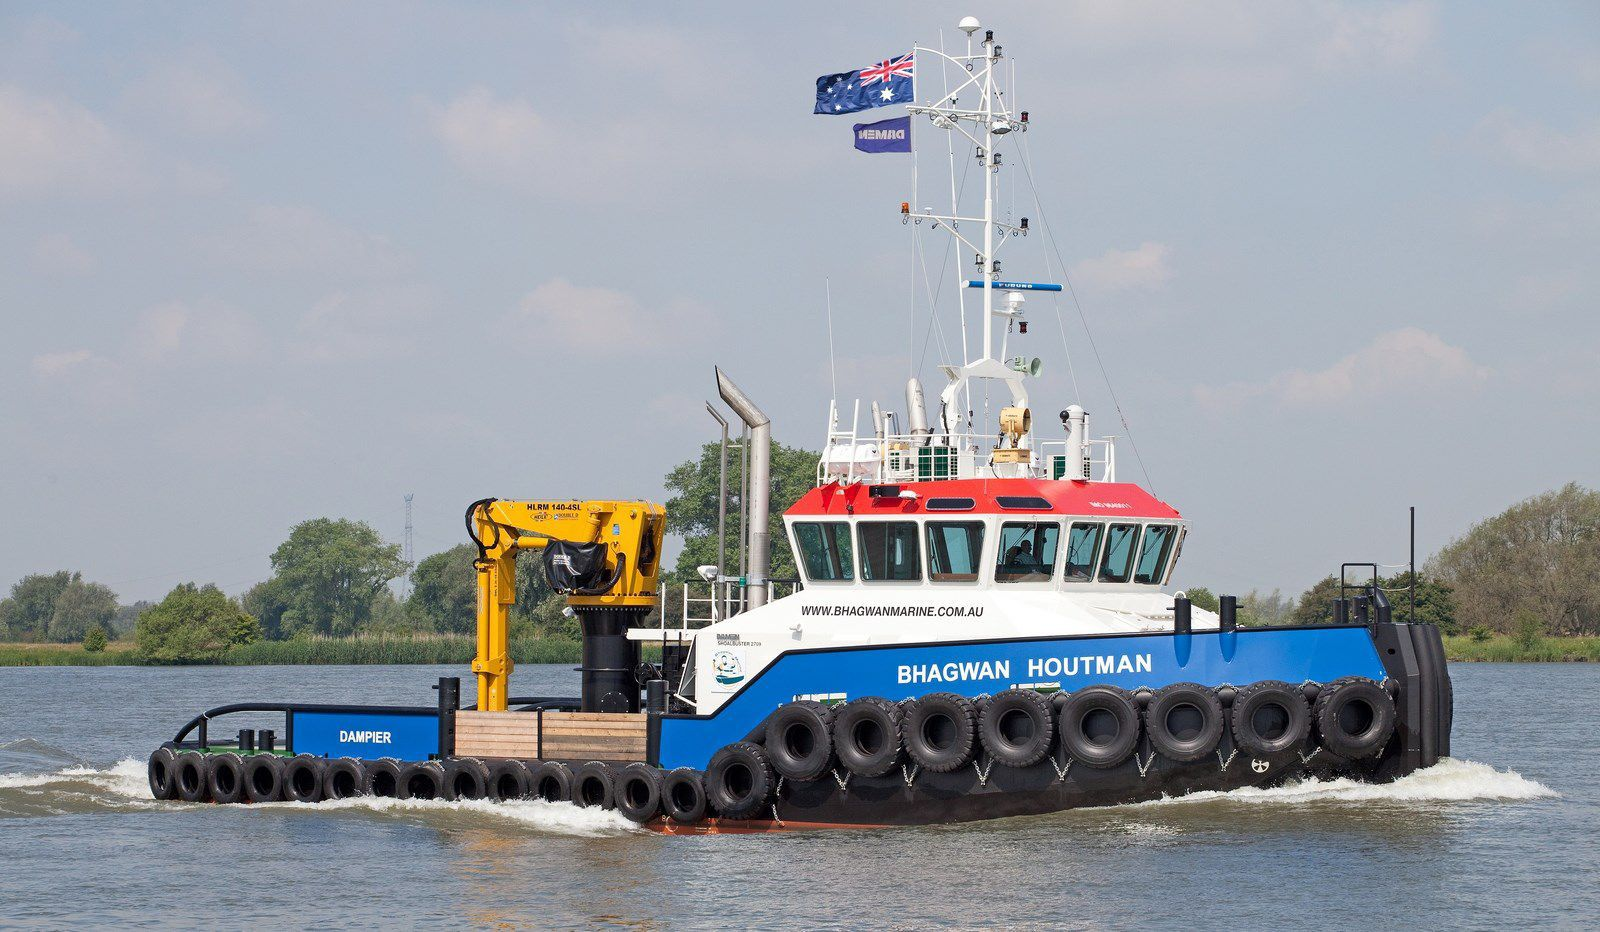 Damen Shoalbusters versatile multi-purpose vessel